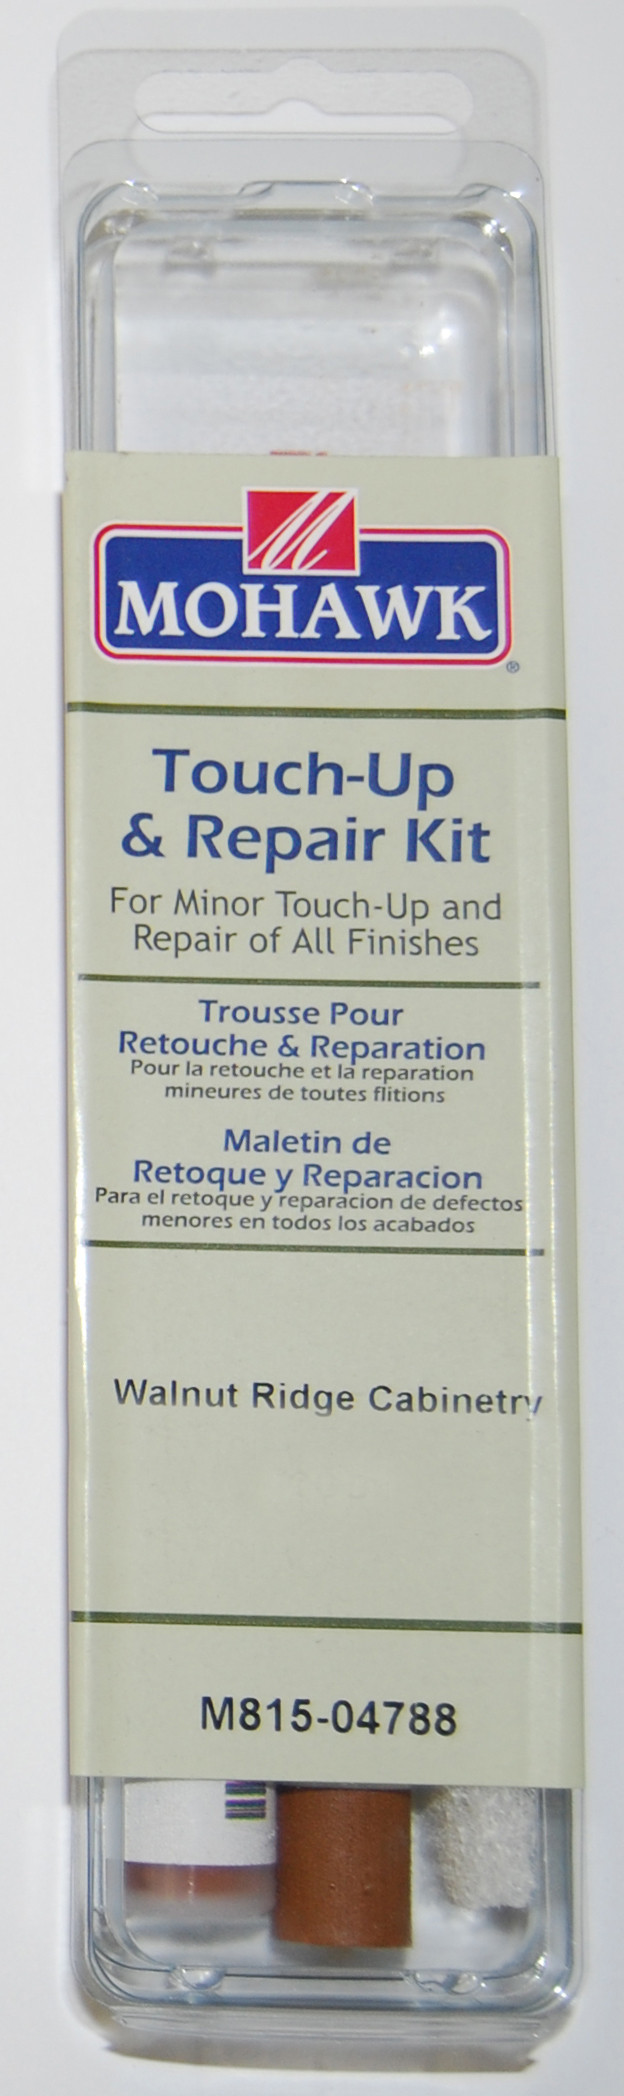 Lily Touch Up Kit